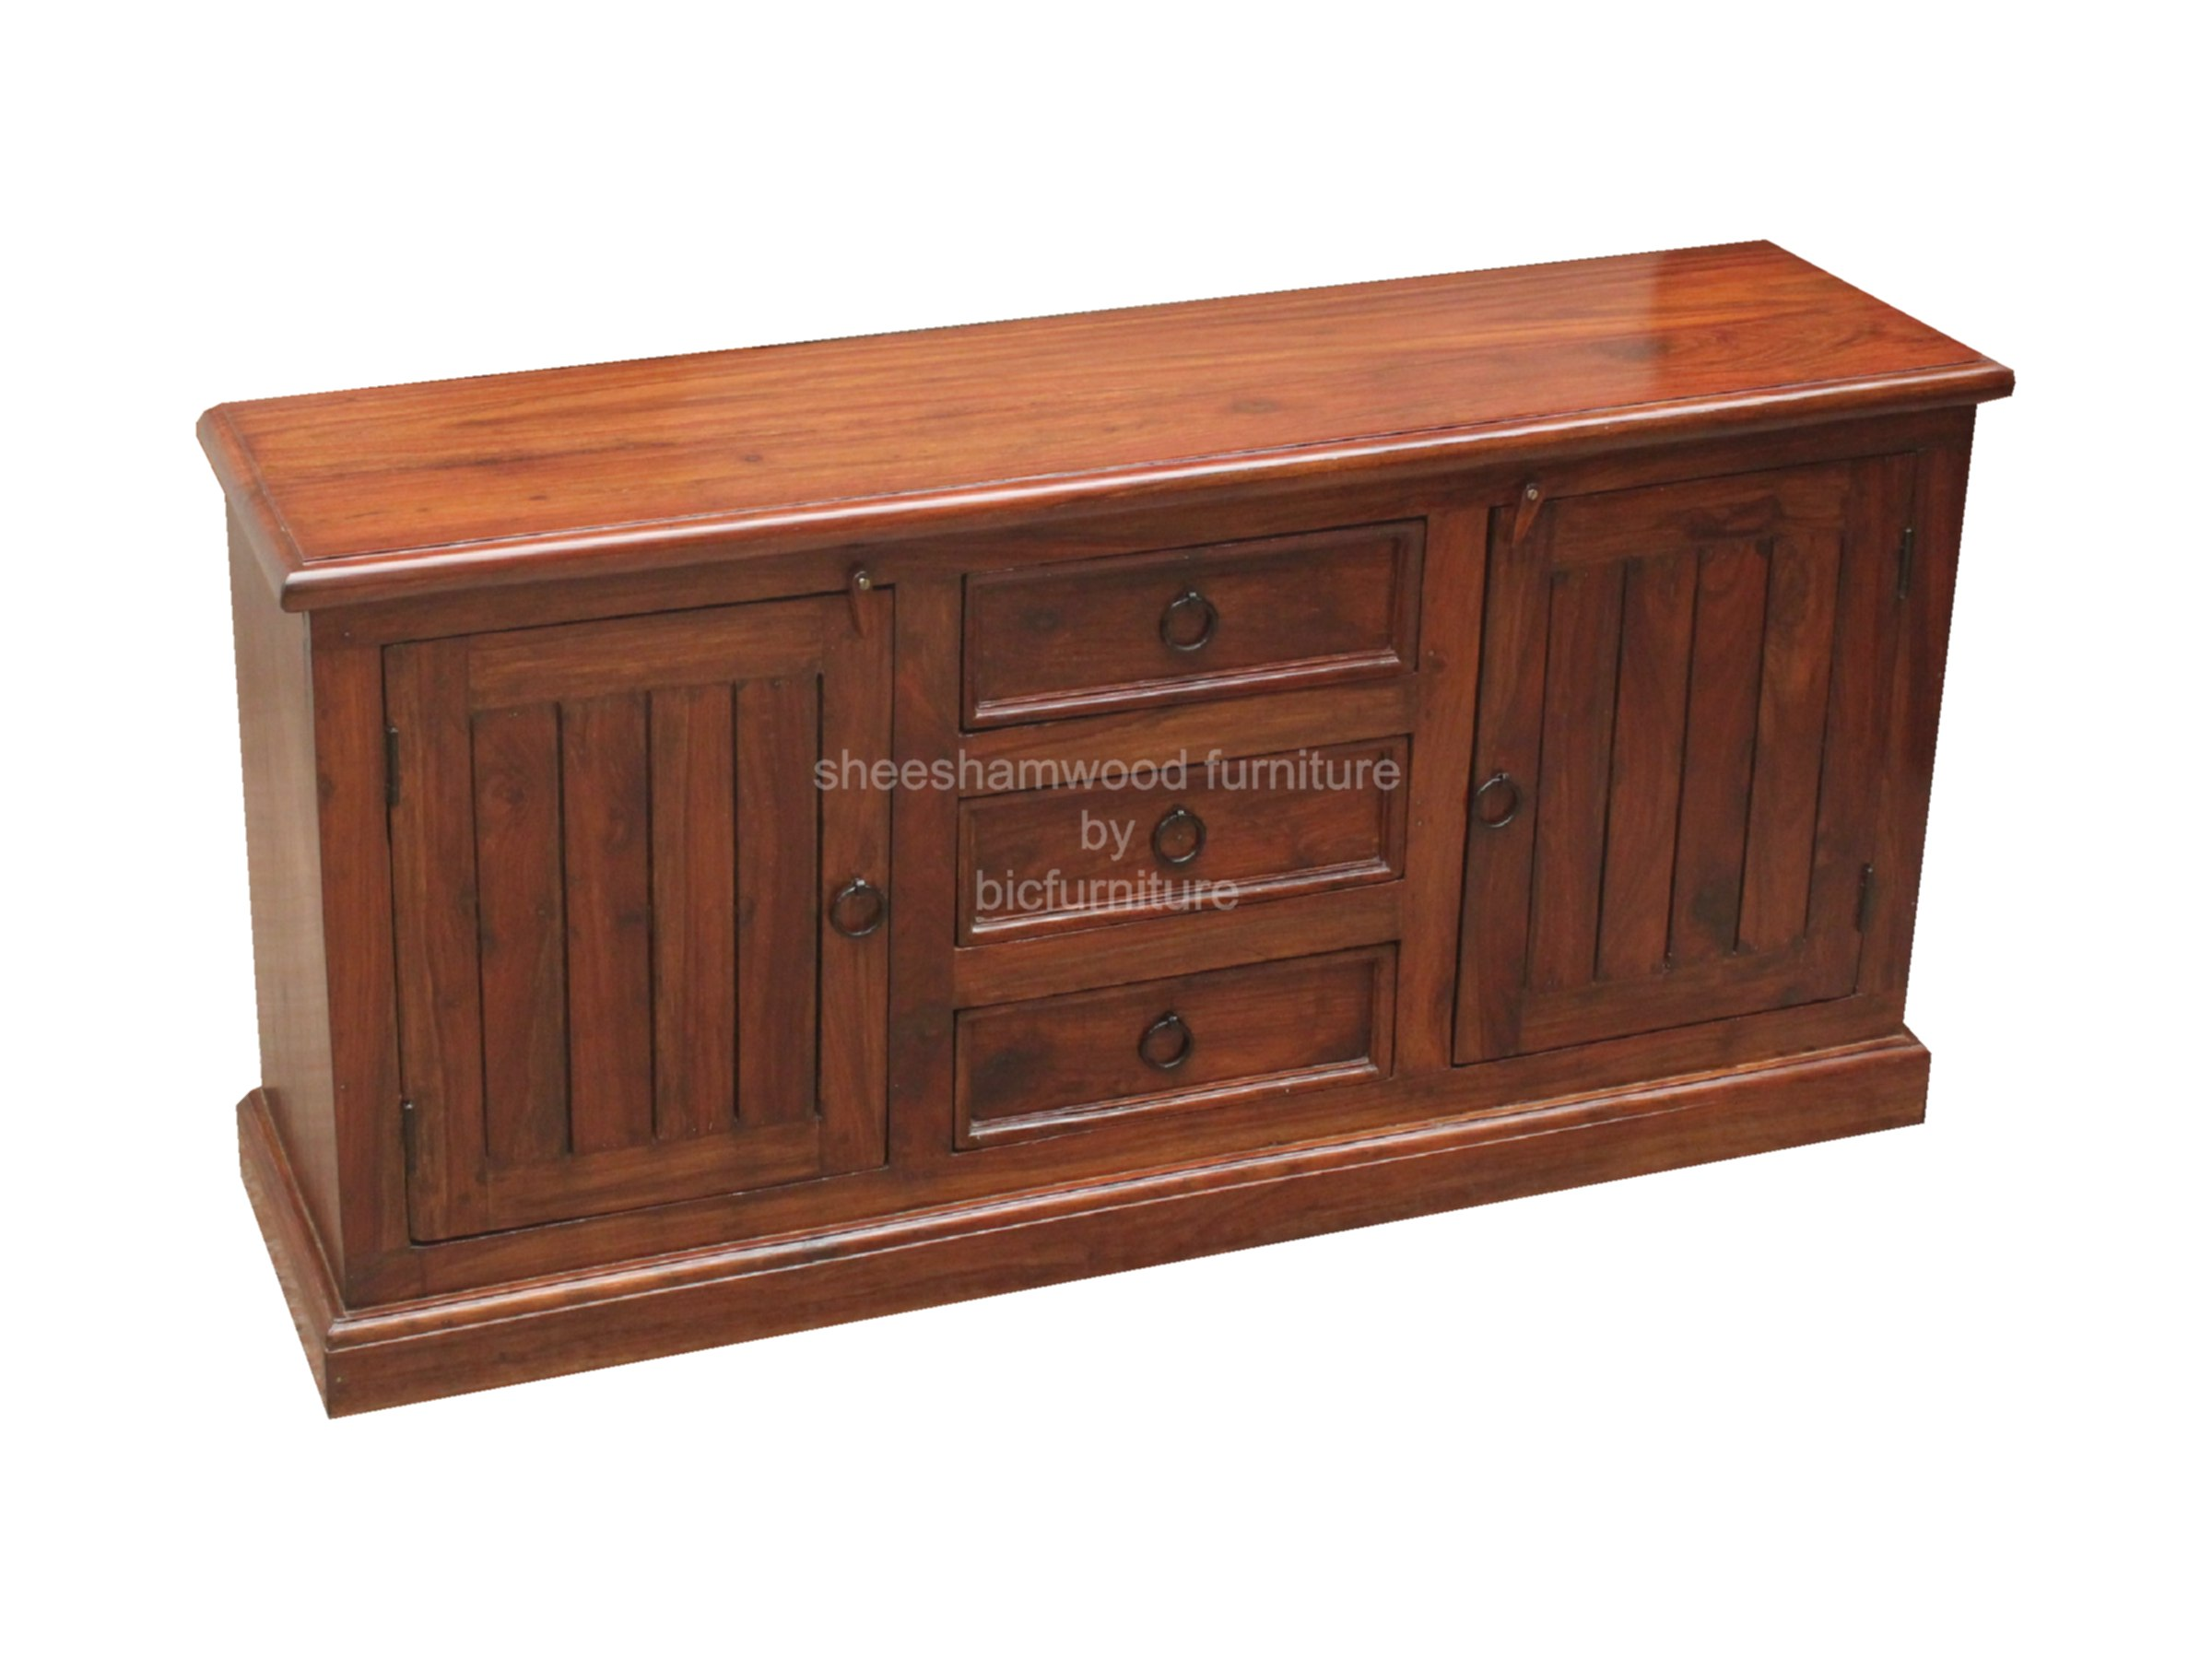 Delicieux _wooden_low_sideboard_3_drawer. Small_sheesham_sideboard.  Small_wooden_low_sideboard. Small_wooden_sideboard.  Solid_wood_wooden_low_sideboard